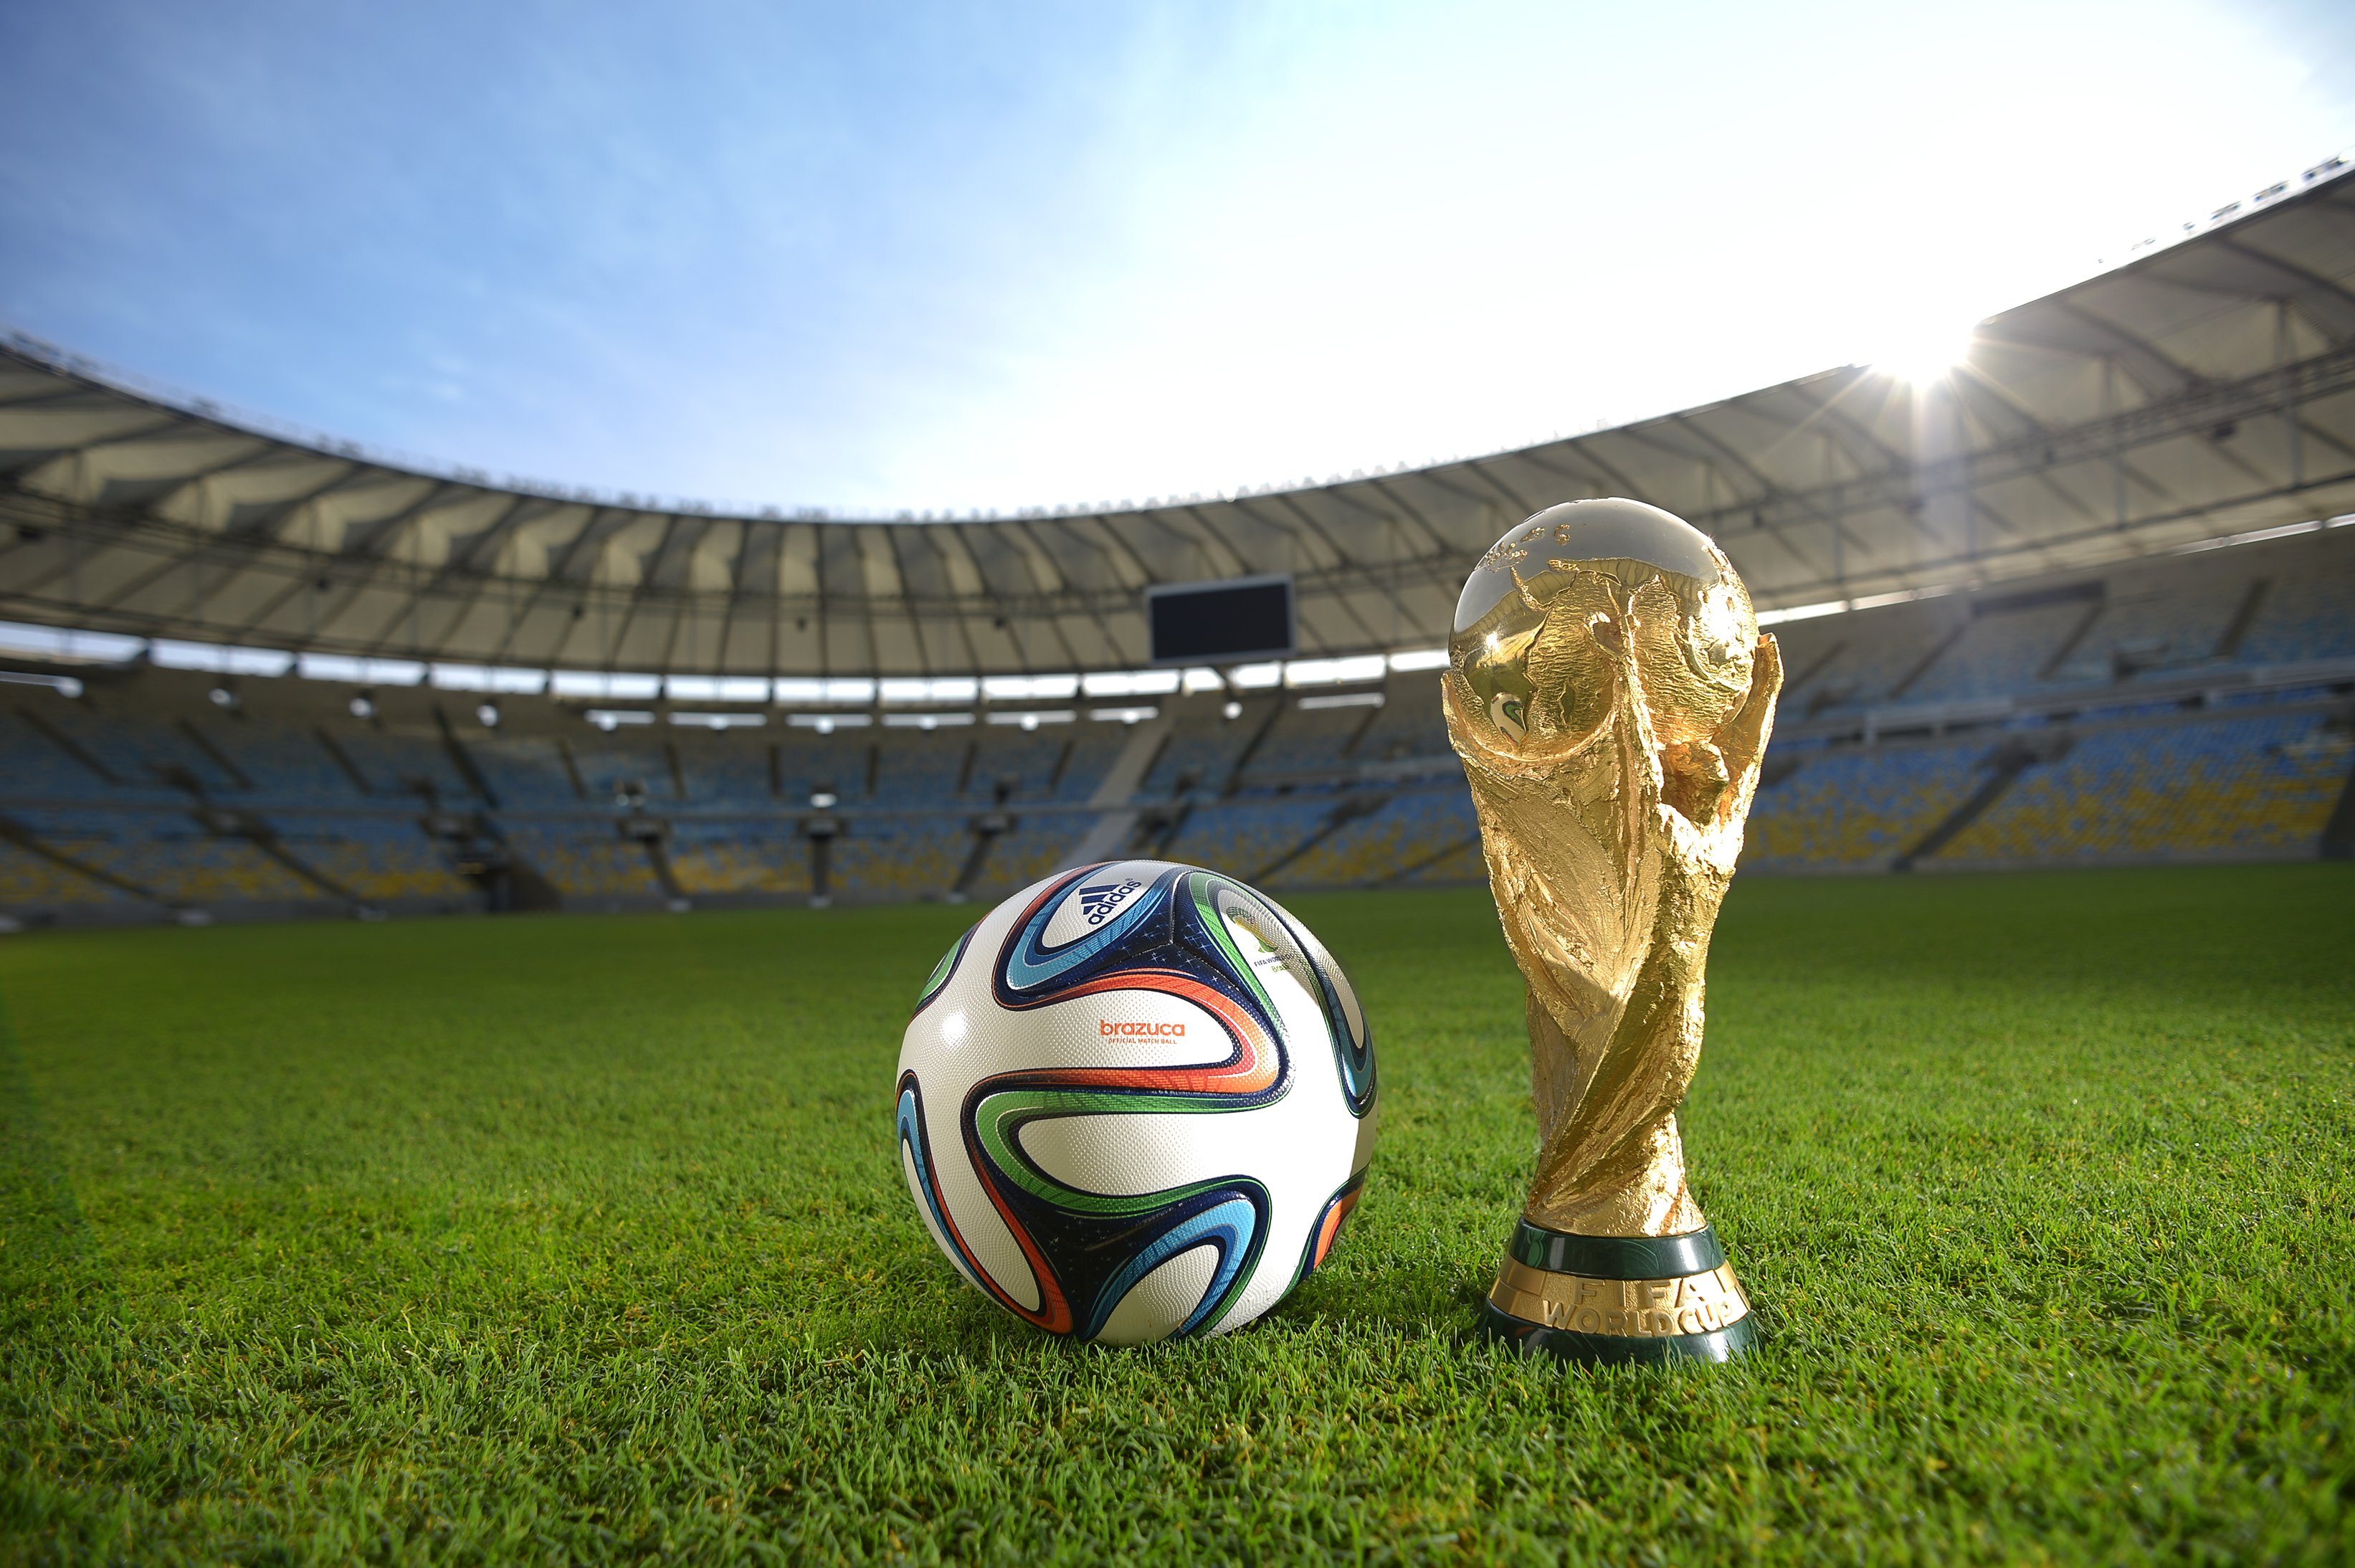 FIFA WORLD CUP Brazil soccer wallpaper HD Wallpapers Image 3285x2187